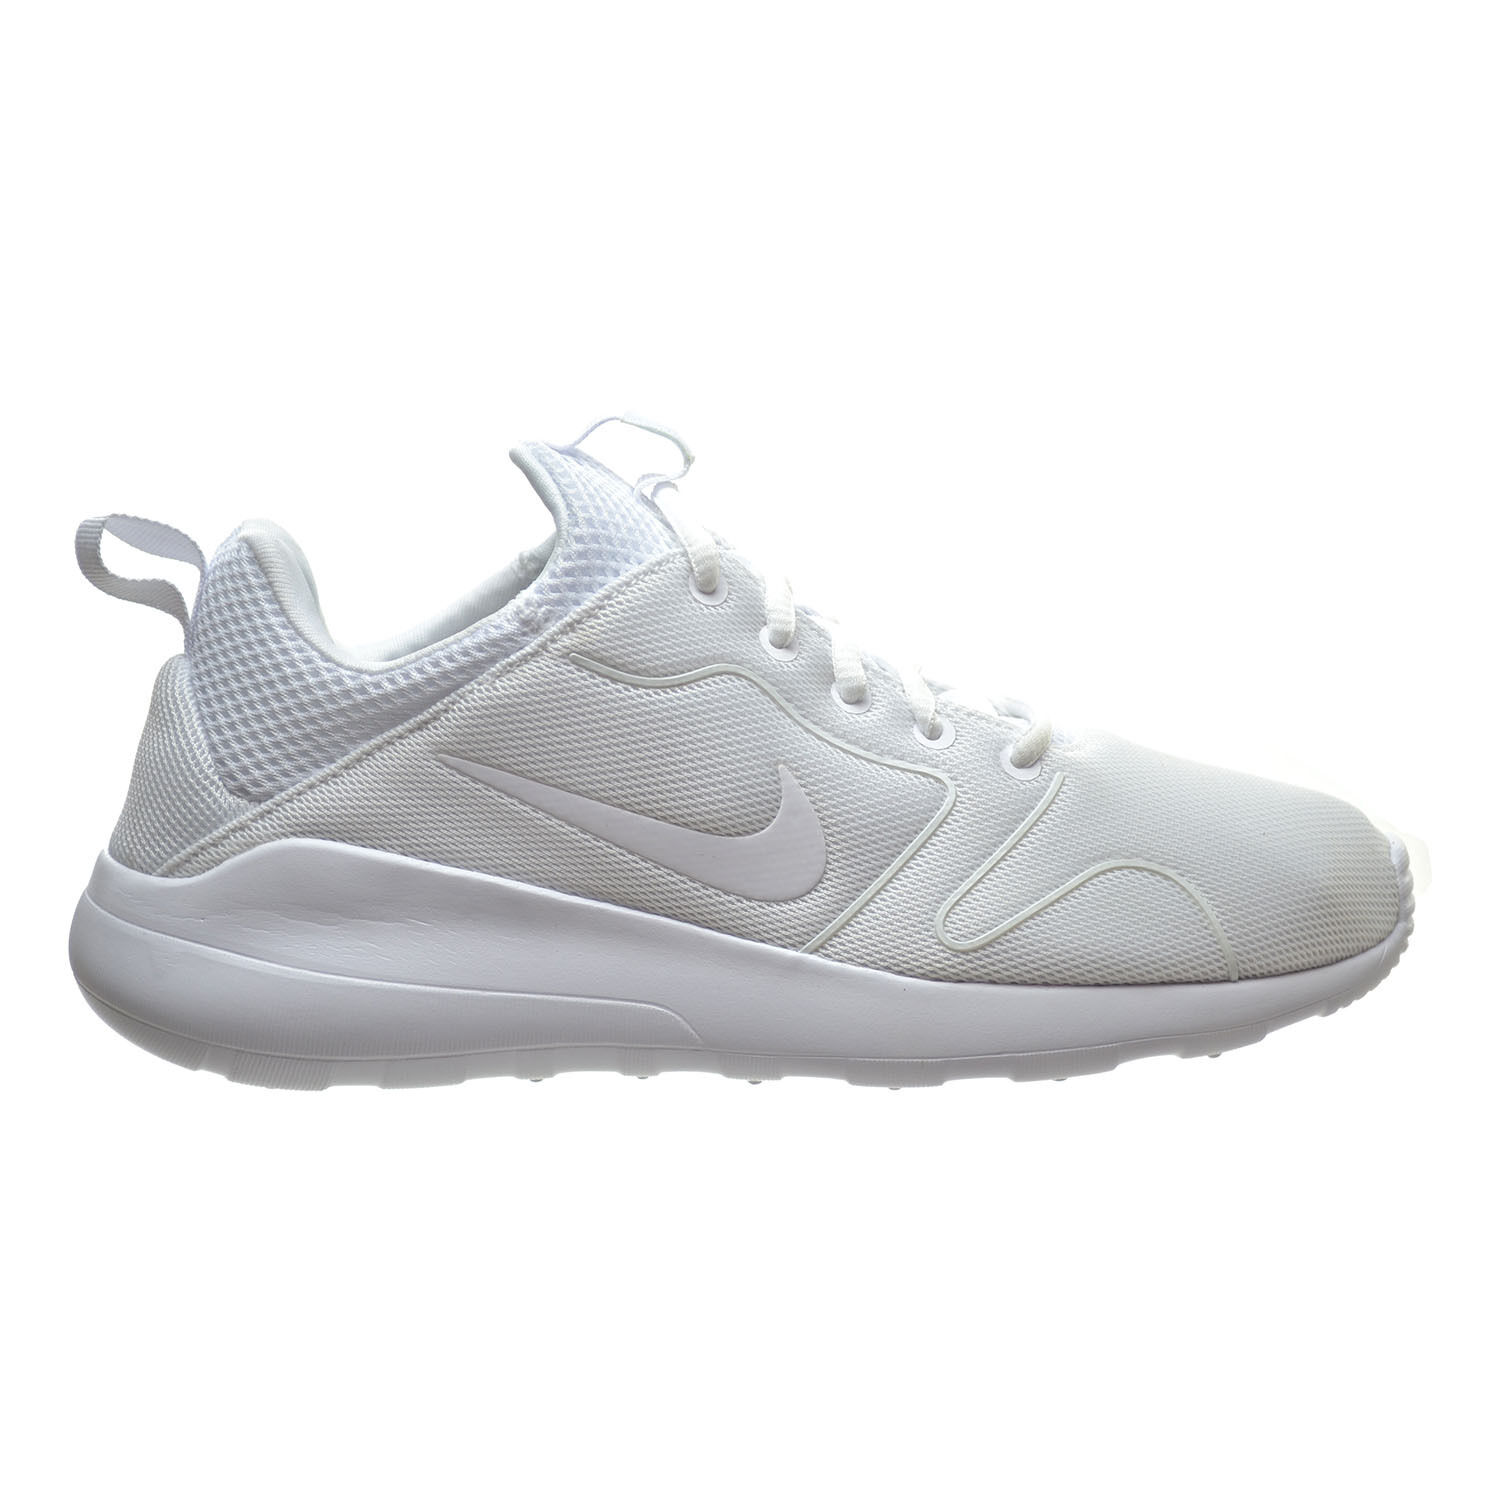 Nike Kaishi 2.0 Men's Shoes White/White/Blanc 833411-110